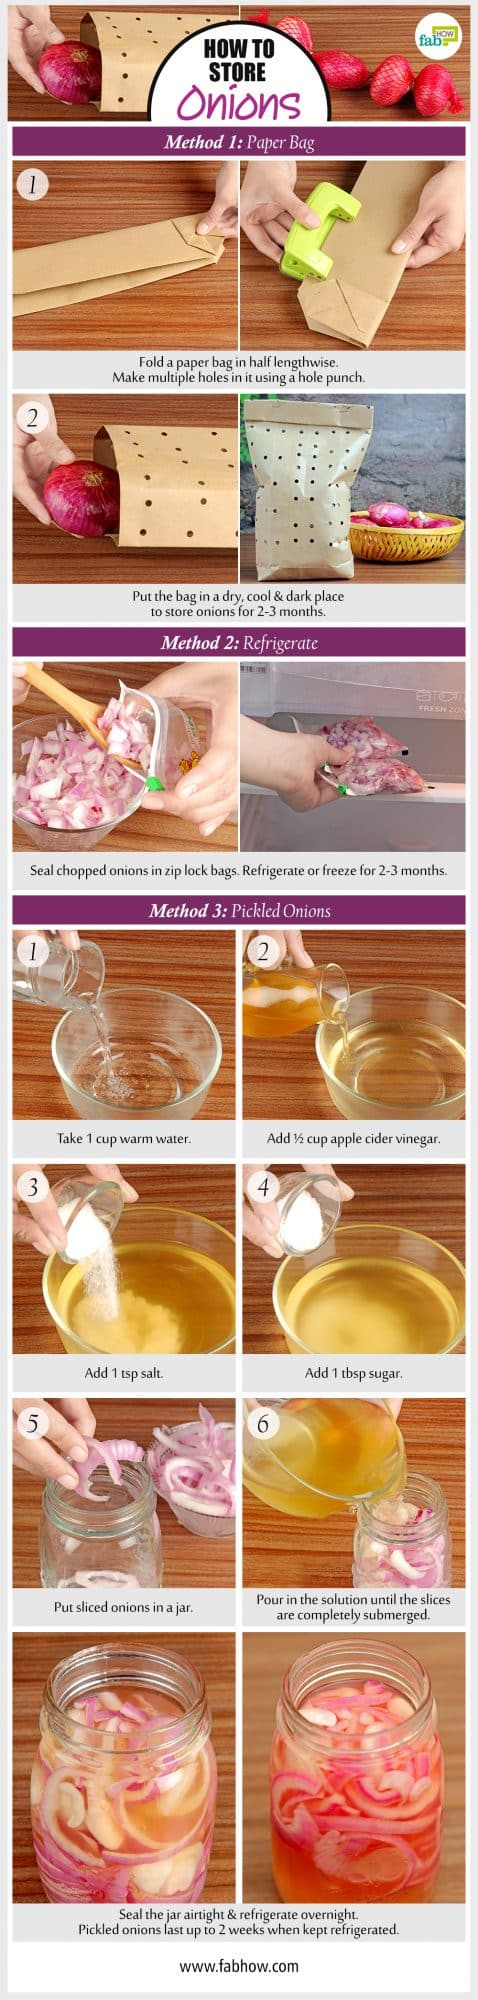 how to store onions summary